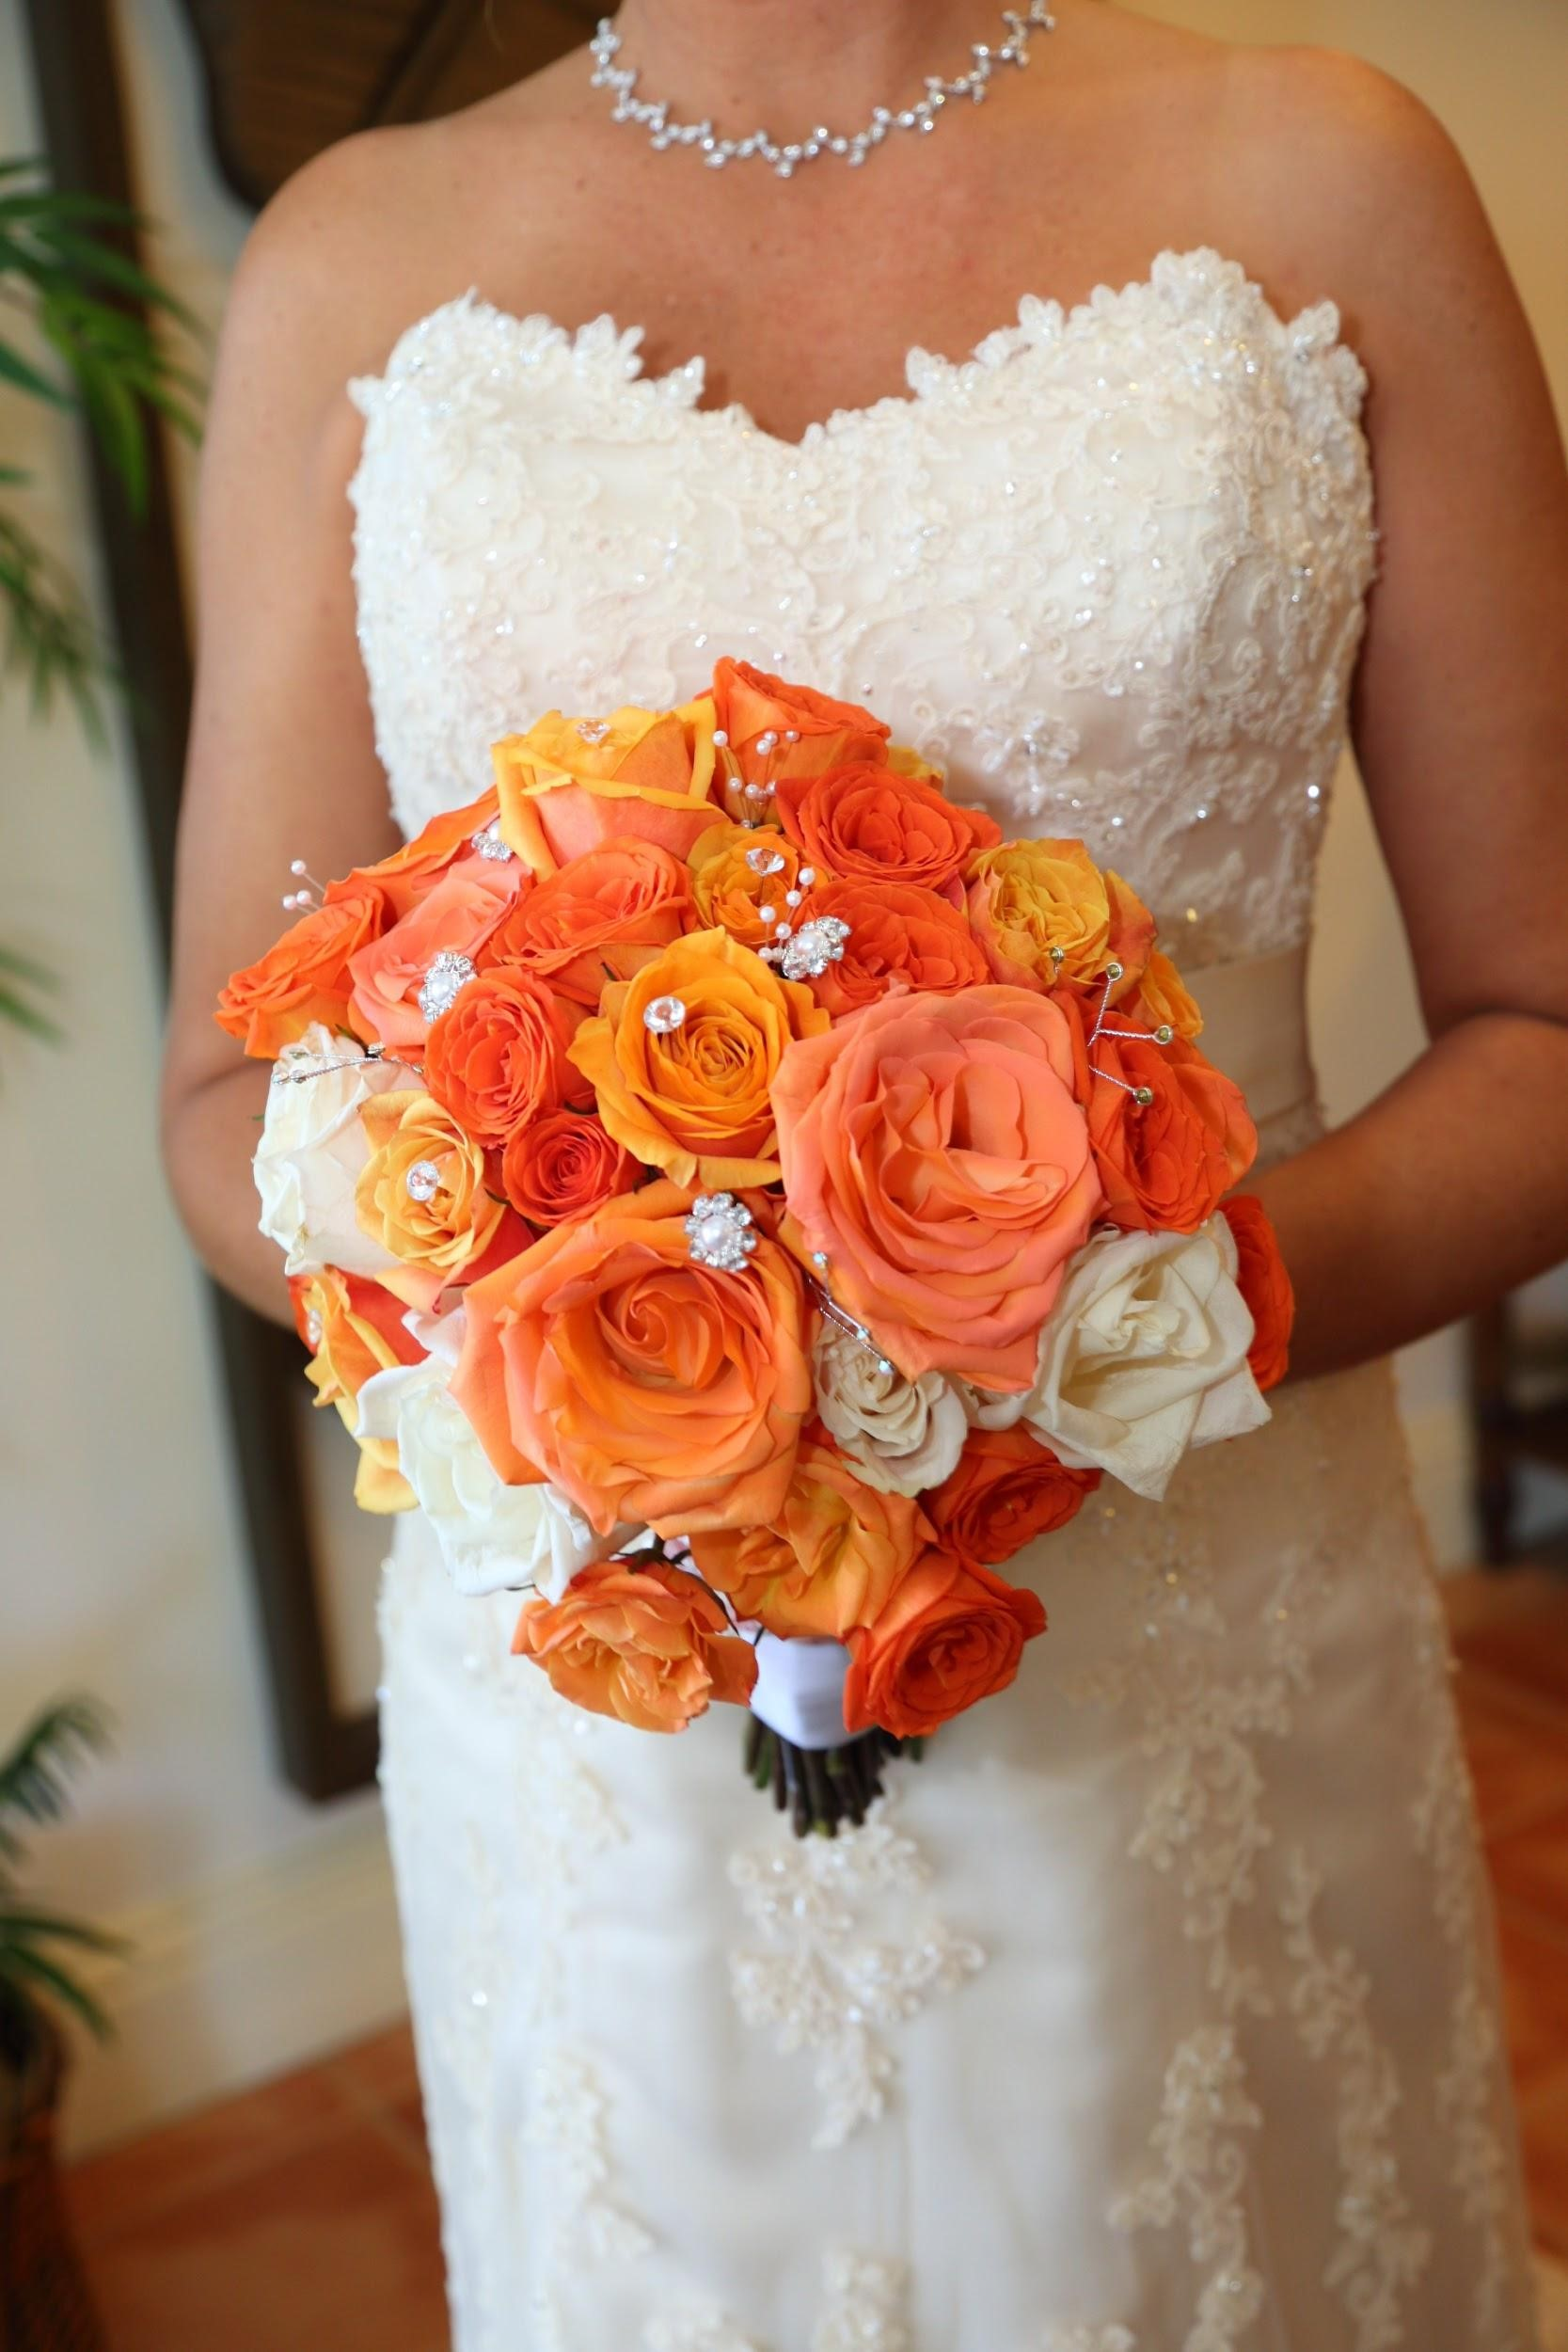 Lush peach and white roses with rhinestone accents for the bride